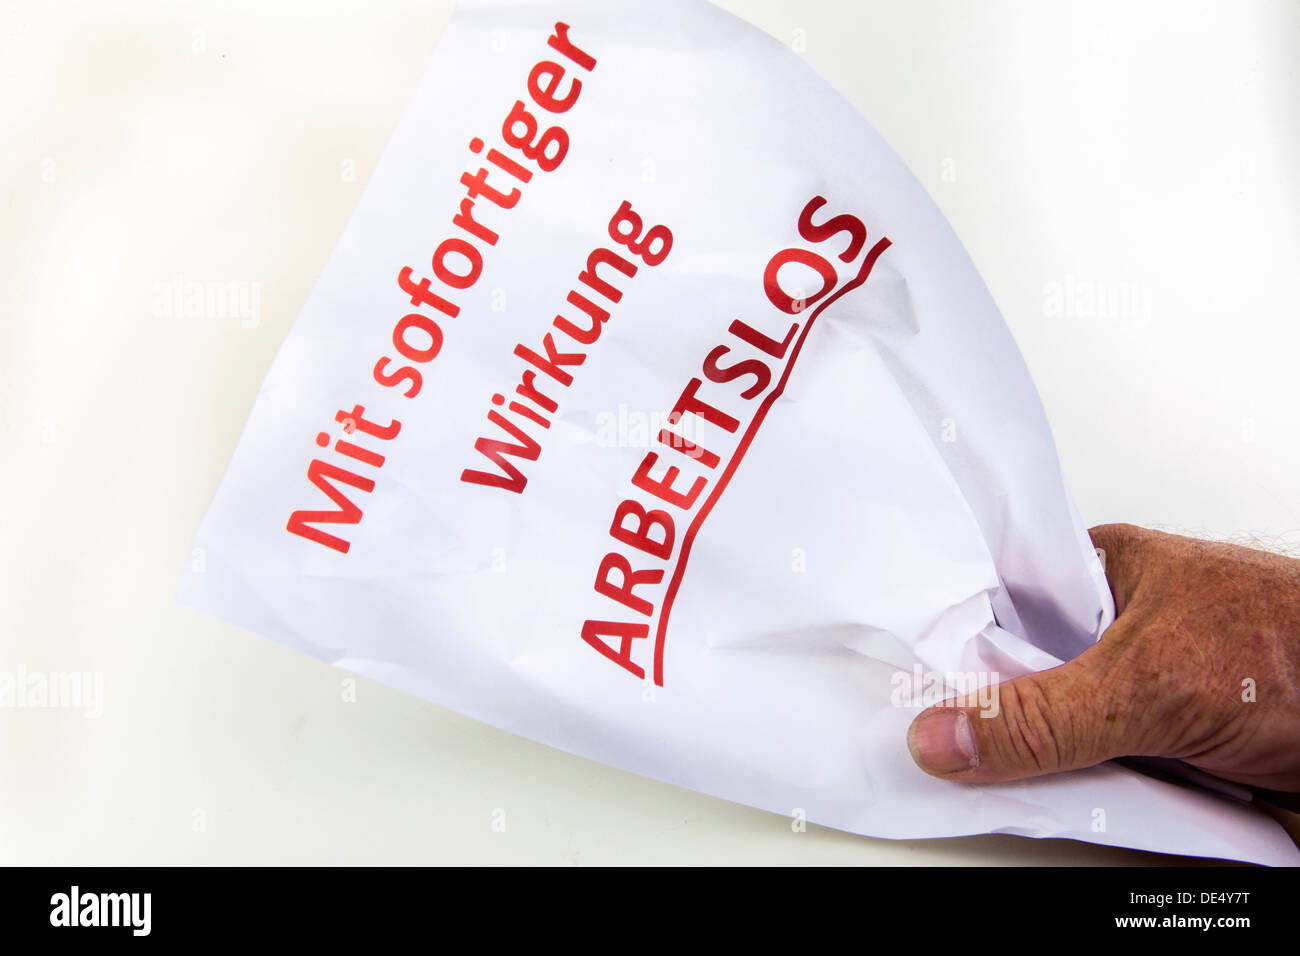 Crumpled letter of termination to an employee, Mit sofortiger Wirkung arbeitslos, German for unemployed with immediate effect - Stock Image